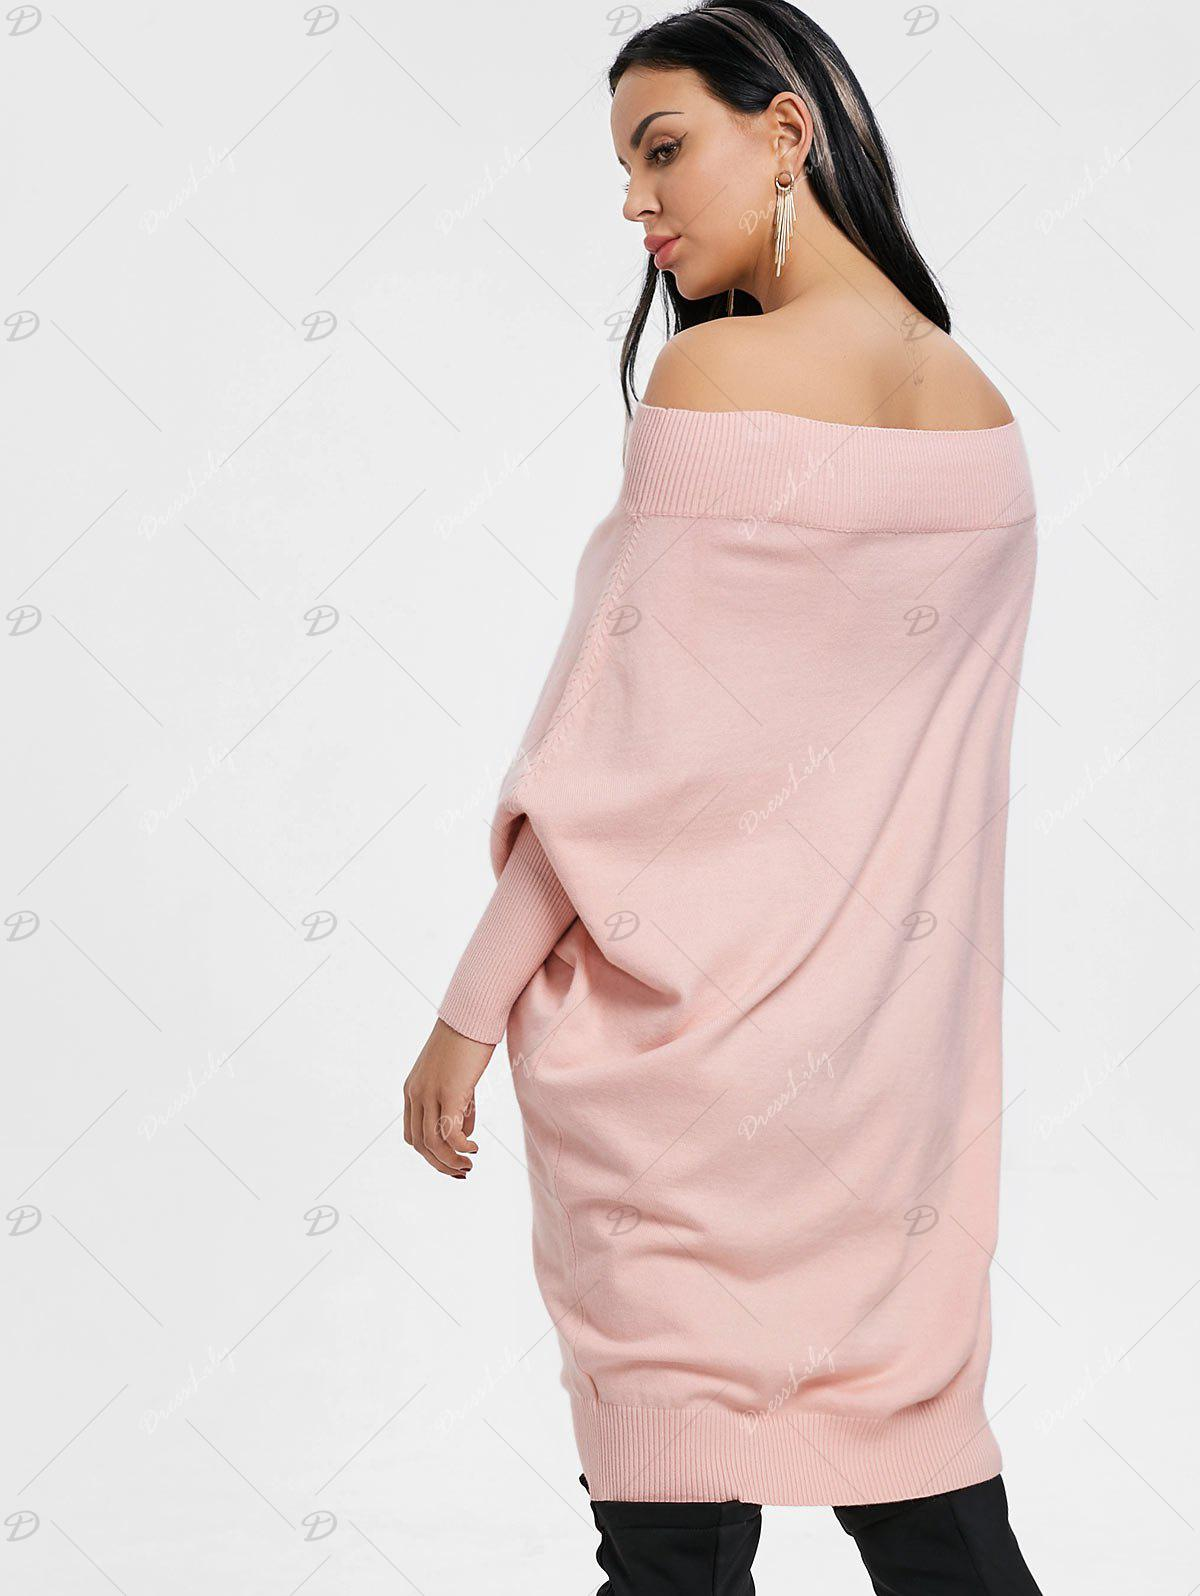 Kintted Off The Shoulder Batwing Sleeve Dress - PINK XL